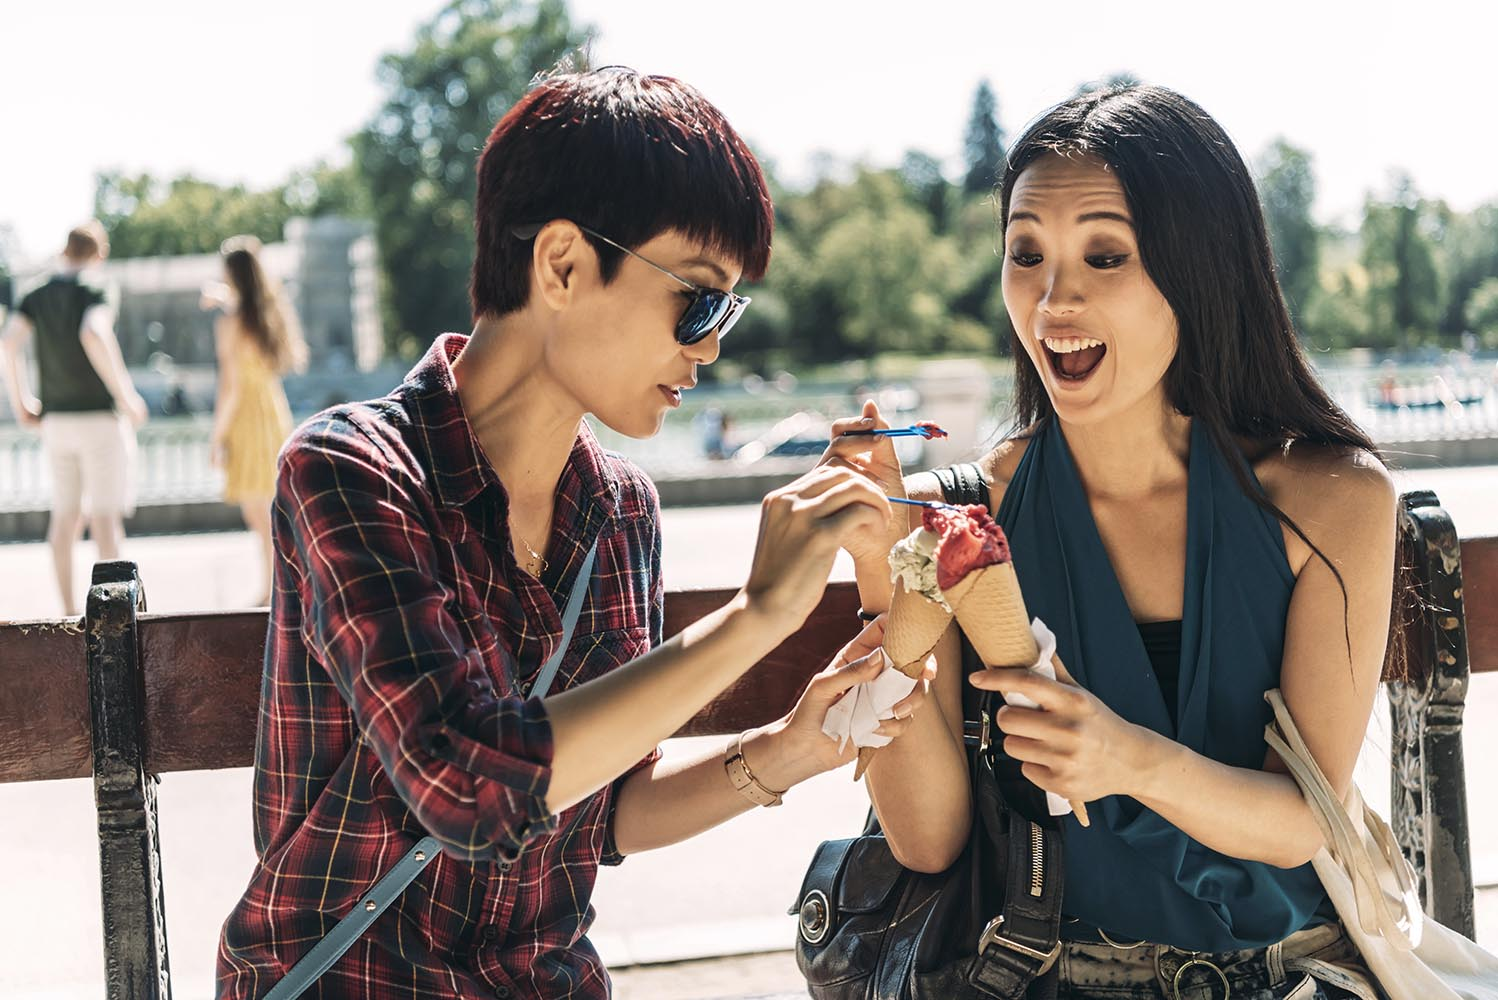 Asian women eating ice cream on park bench